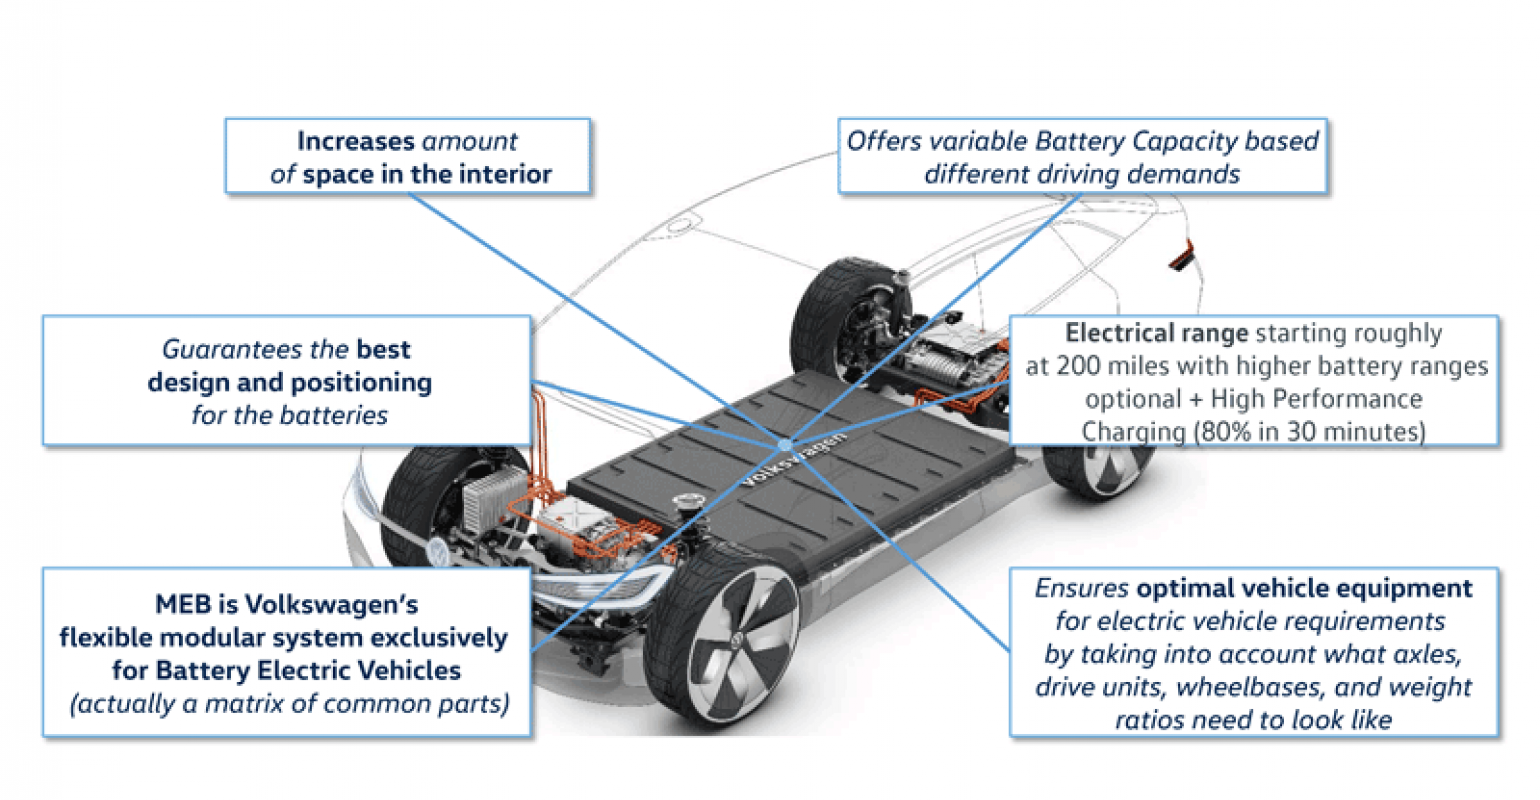 All Electric Meb Vehicle Platform To Drive New Firsts At Volkswagen Gen Air Cooled Vw Wiring Diagram